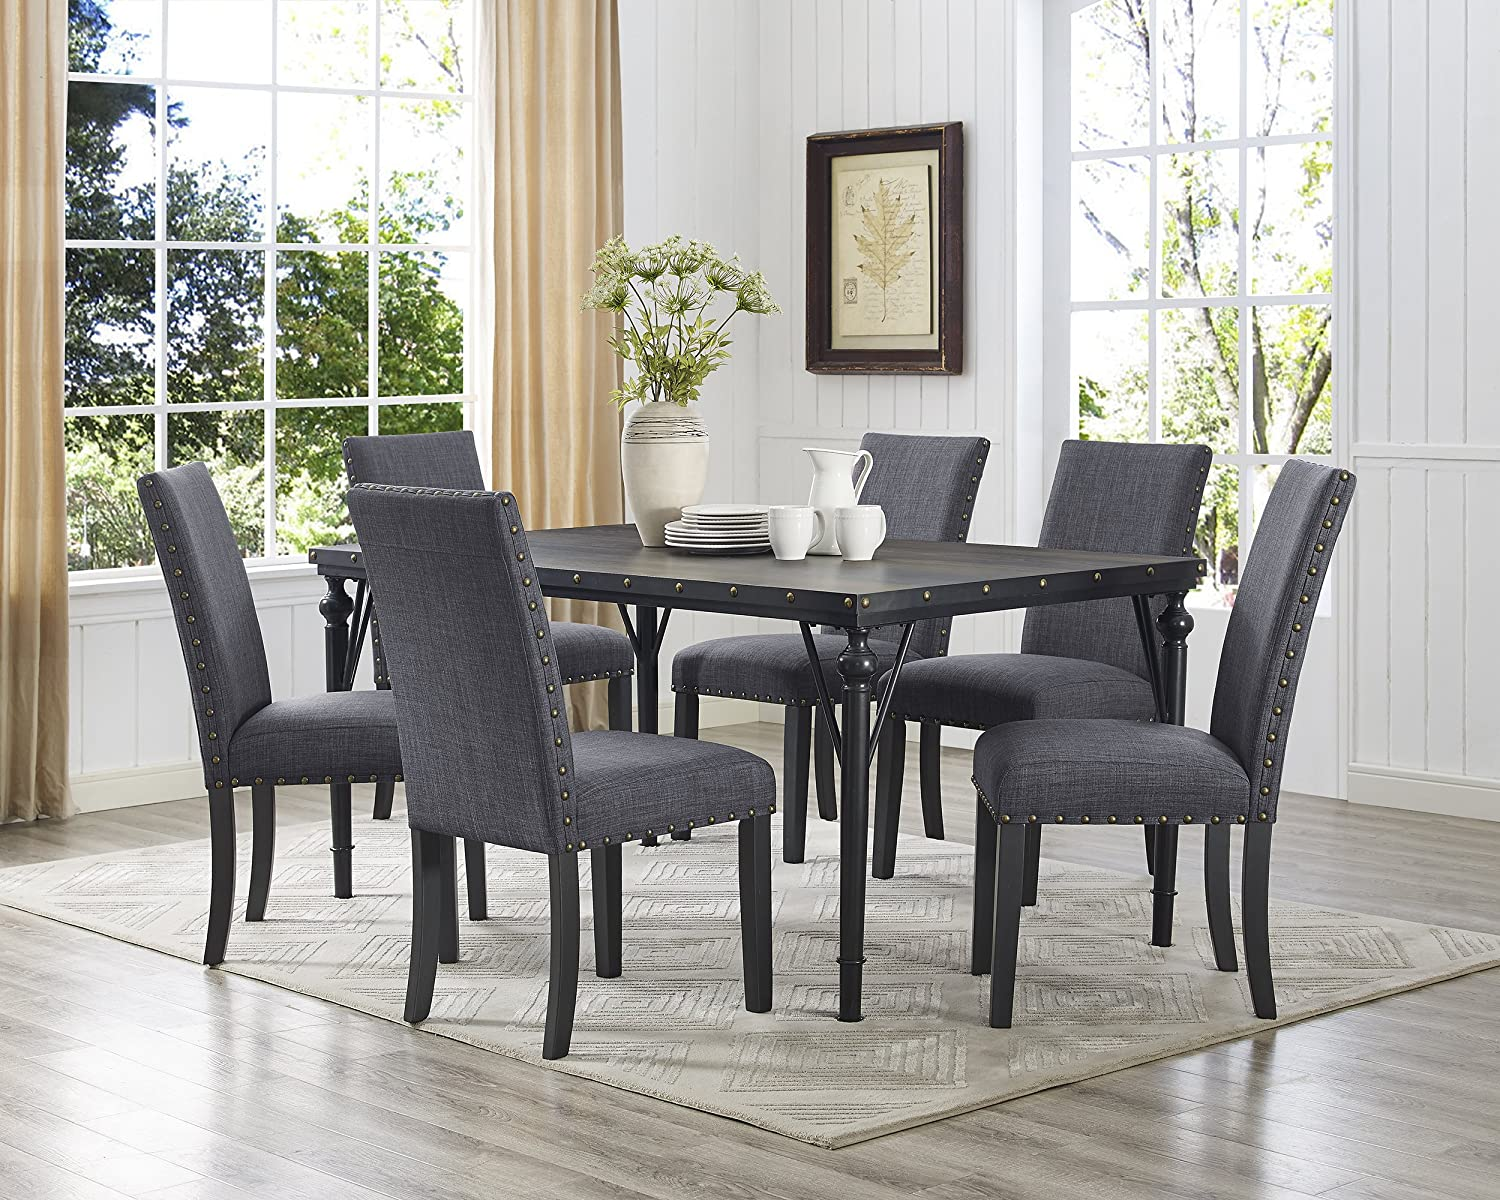 Roundhill Furniture Biony 7-Piece Espresso Wood Dining Set with Gray Fabric Nail head Chairs,